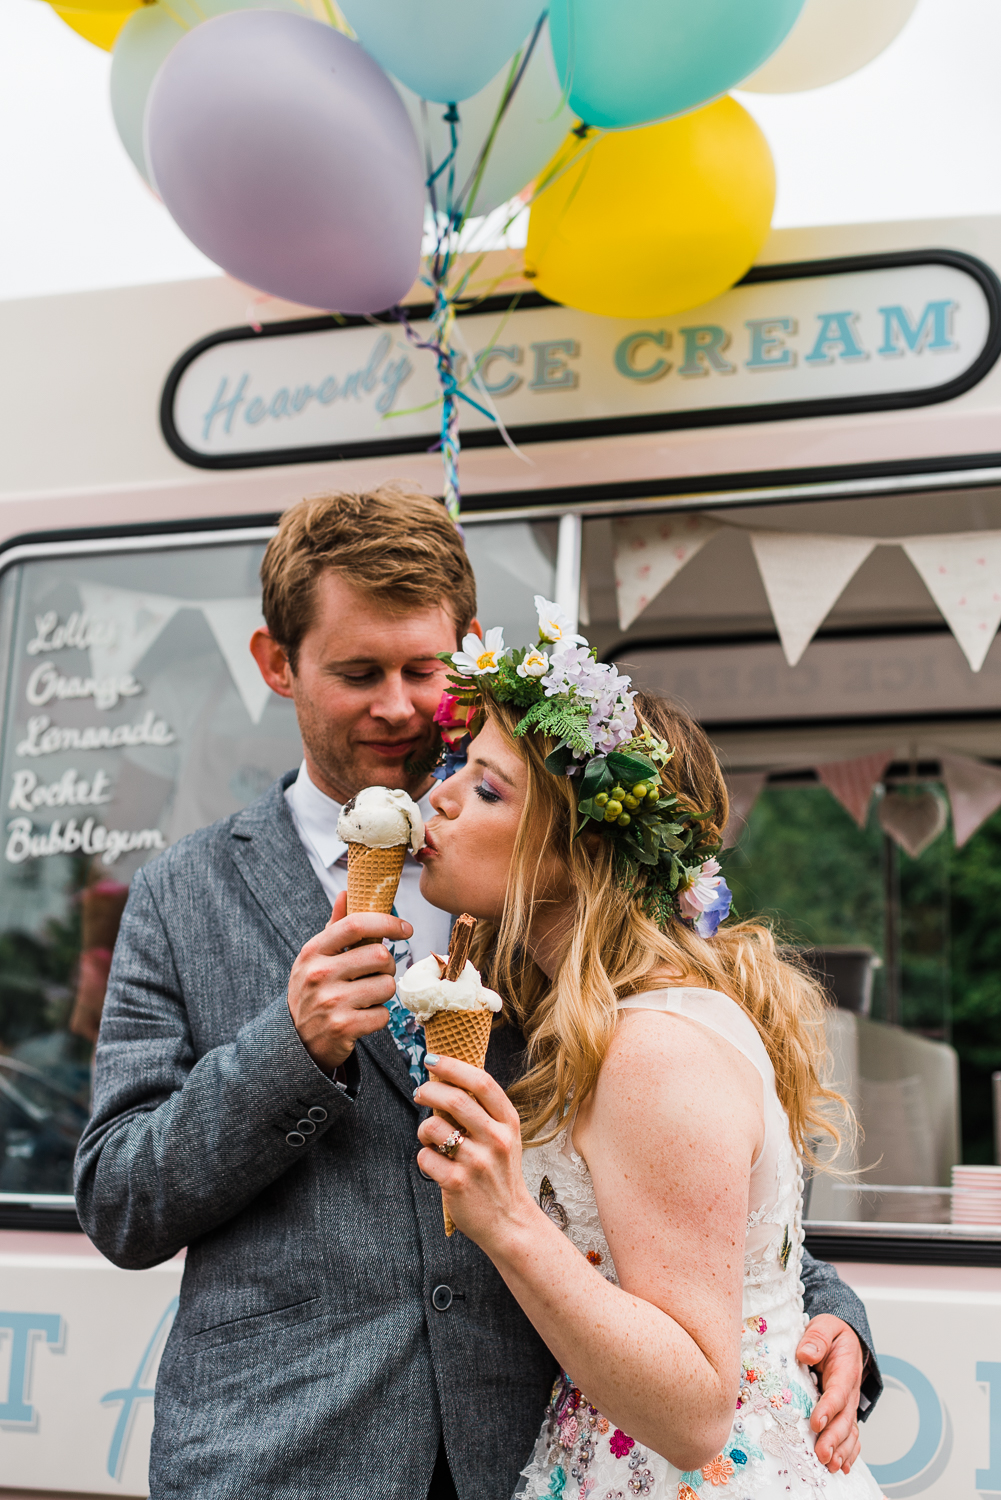 A wedding portrait of bride and groom sharing ice-cream together